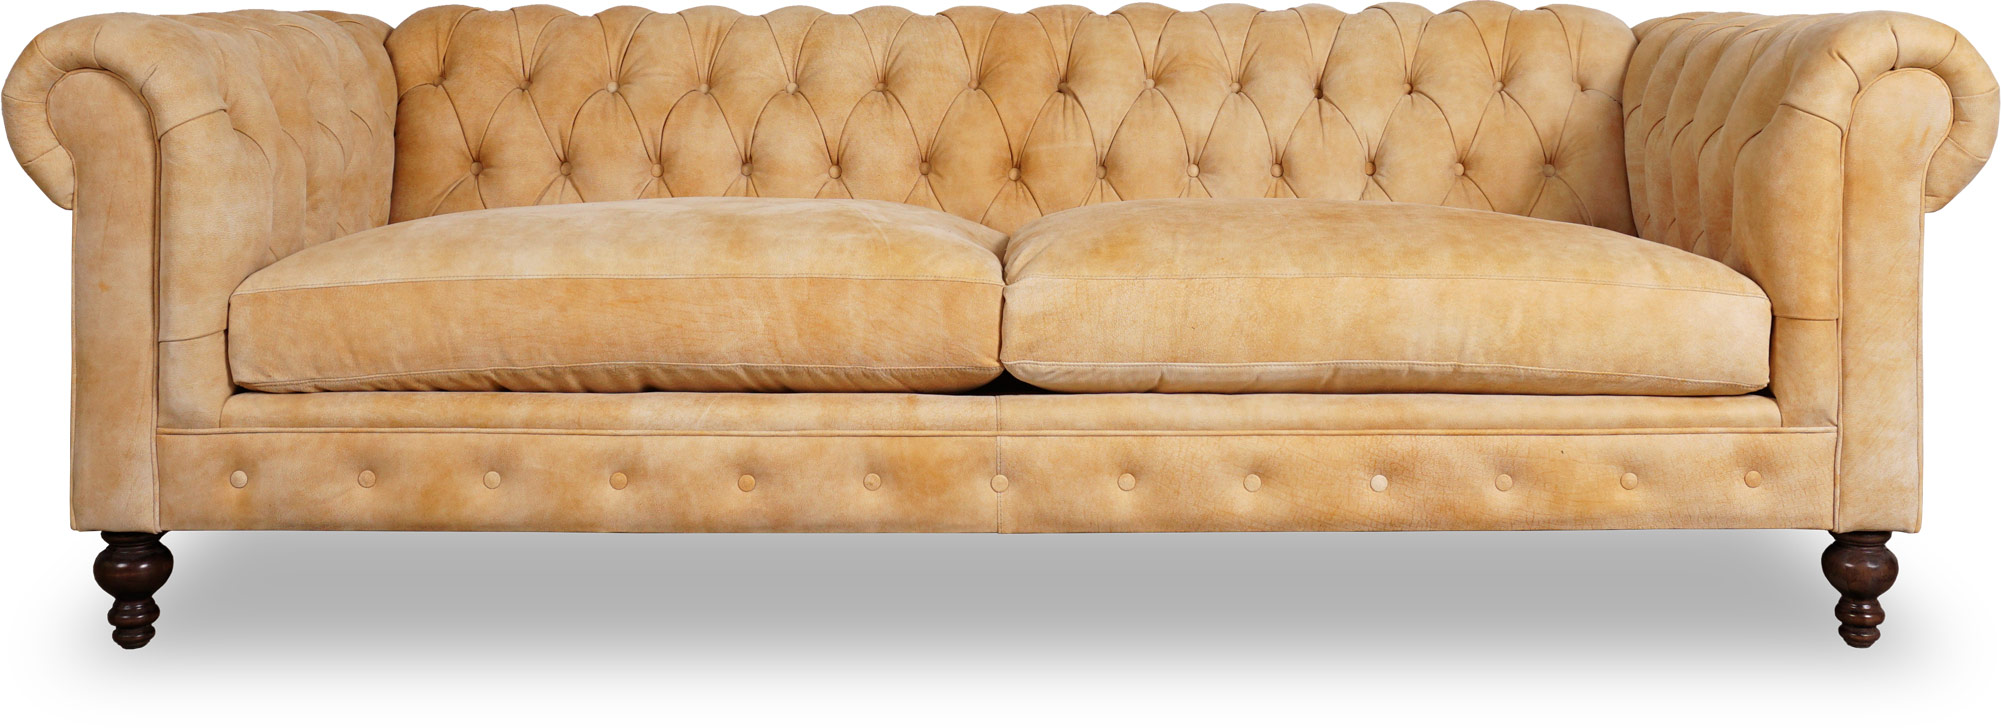 Express Furniture Higgins Leather Chesterfield Sofa Roger